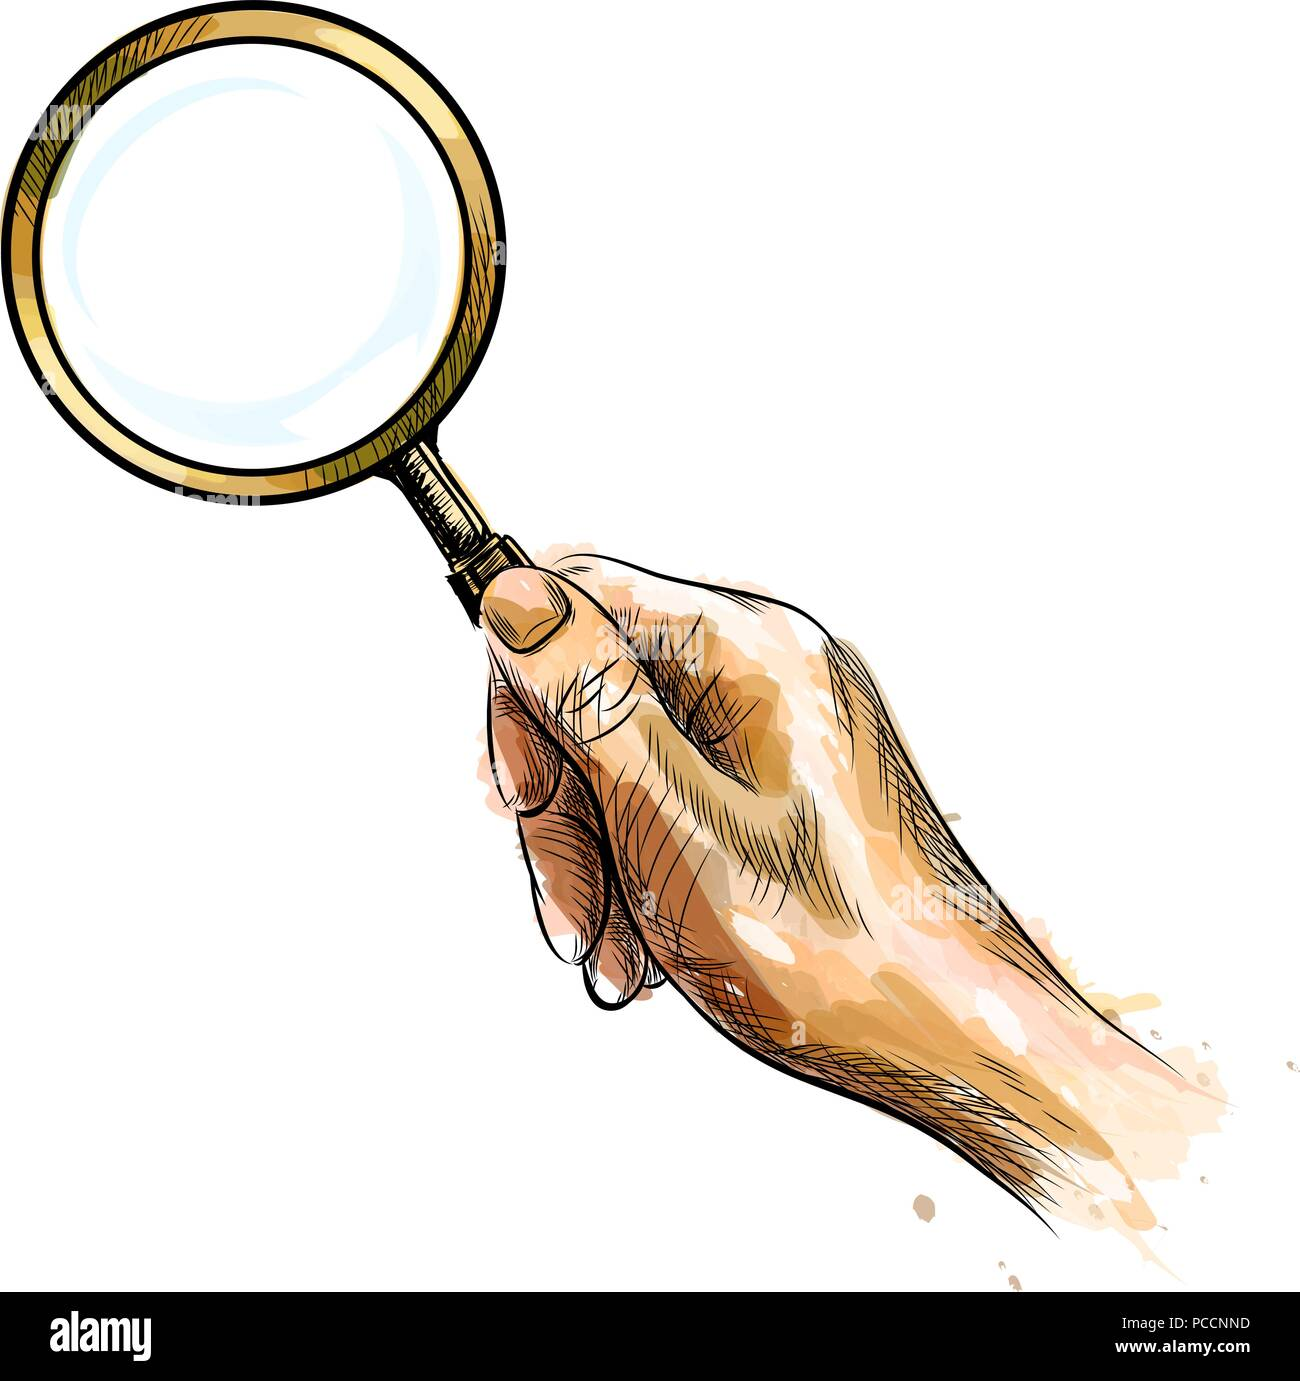 Hand holding magnifying glass - Stock Vector